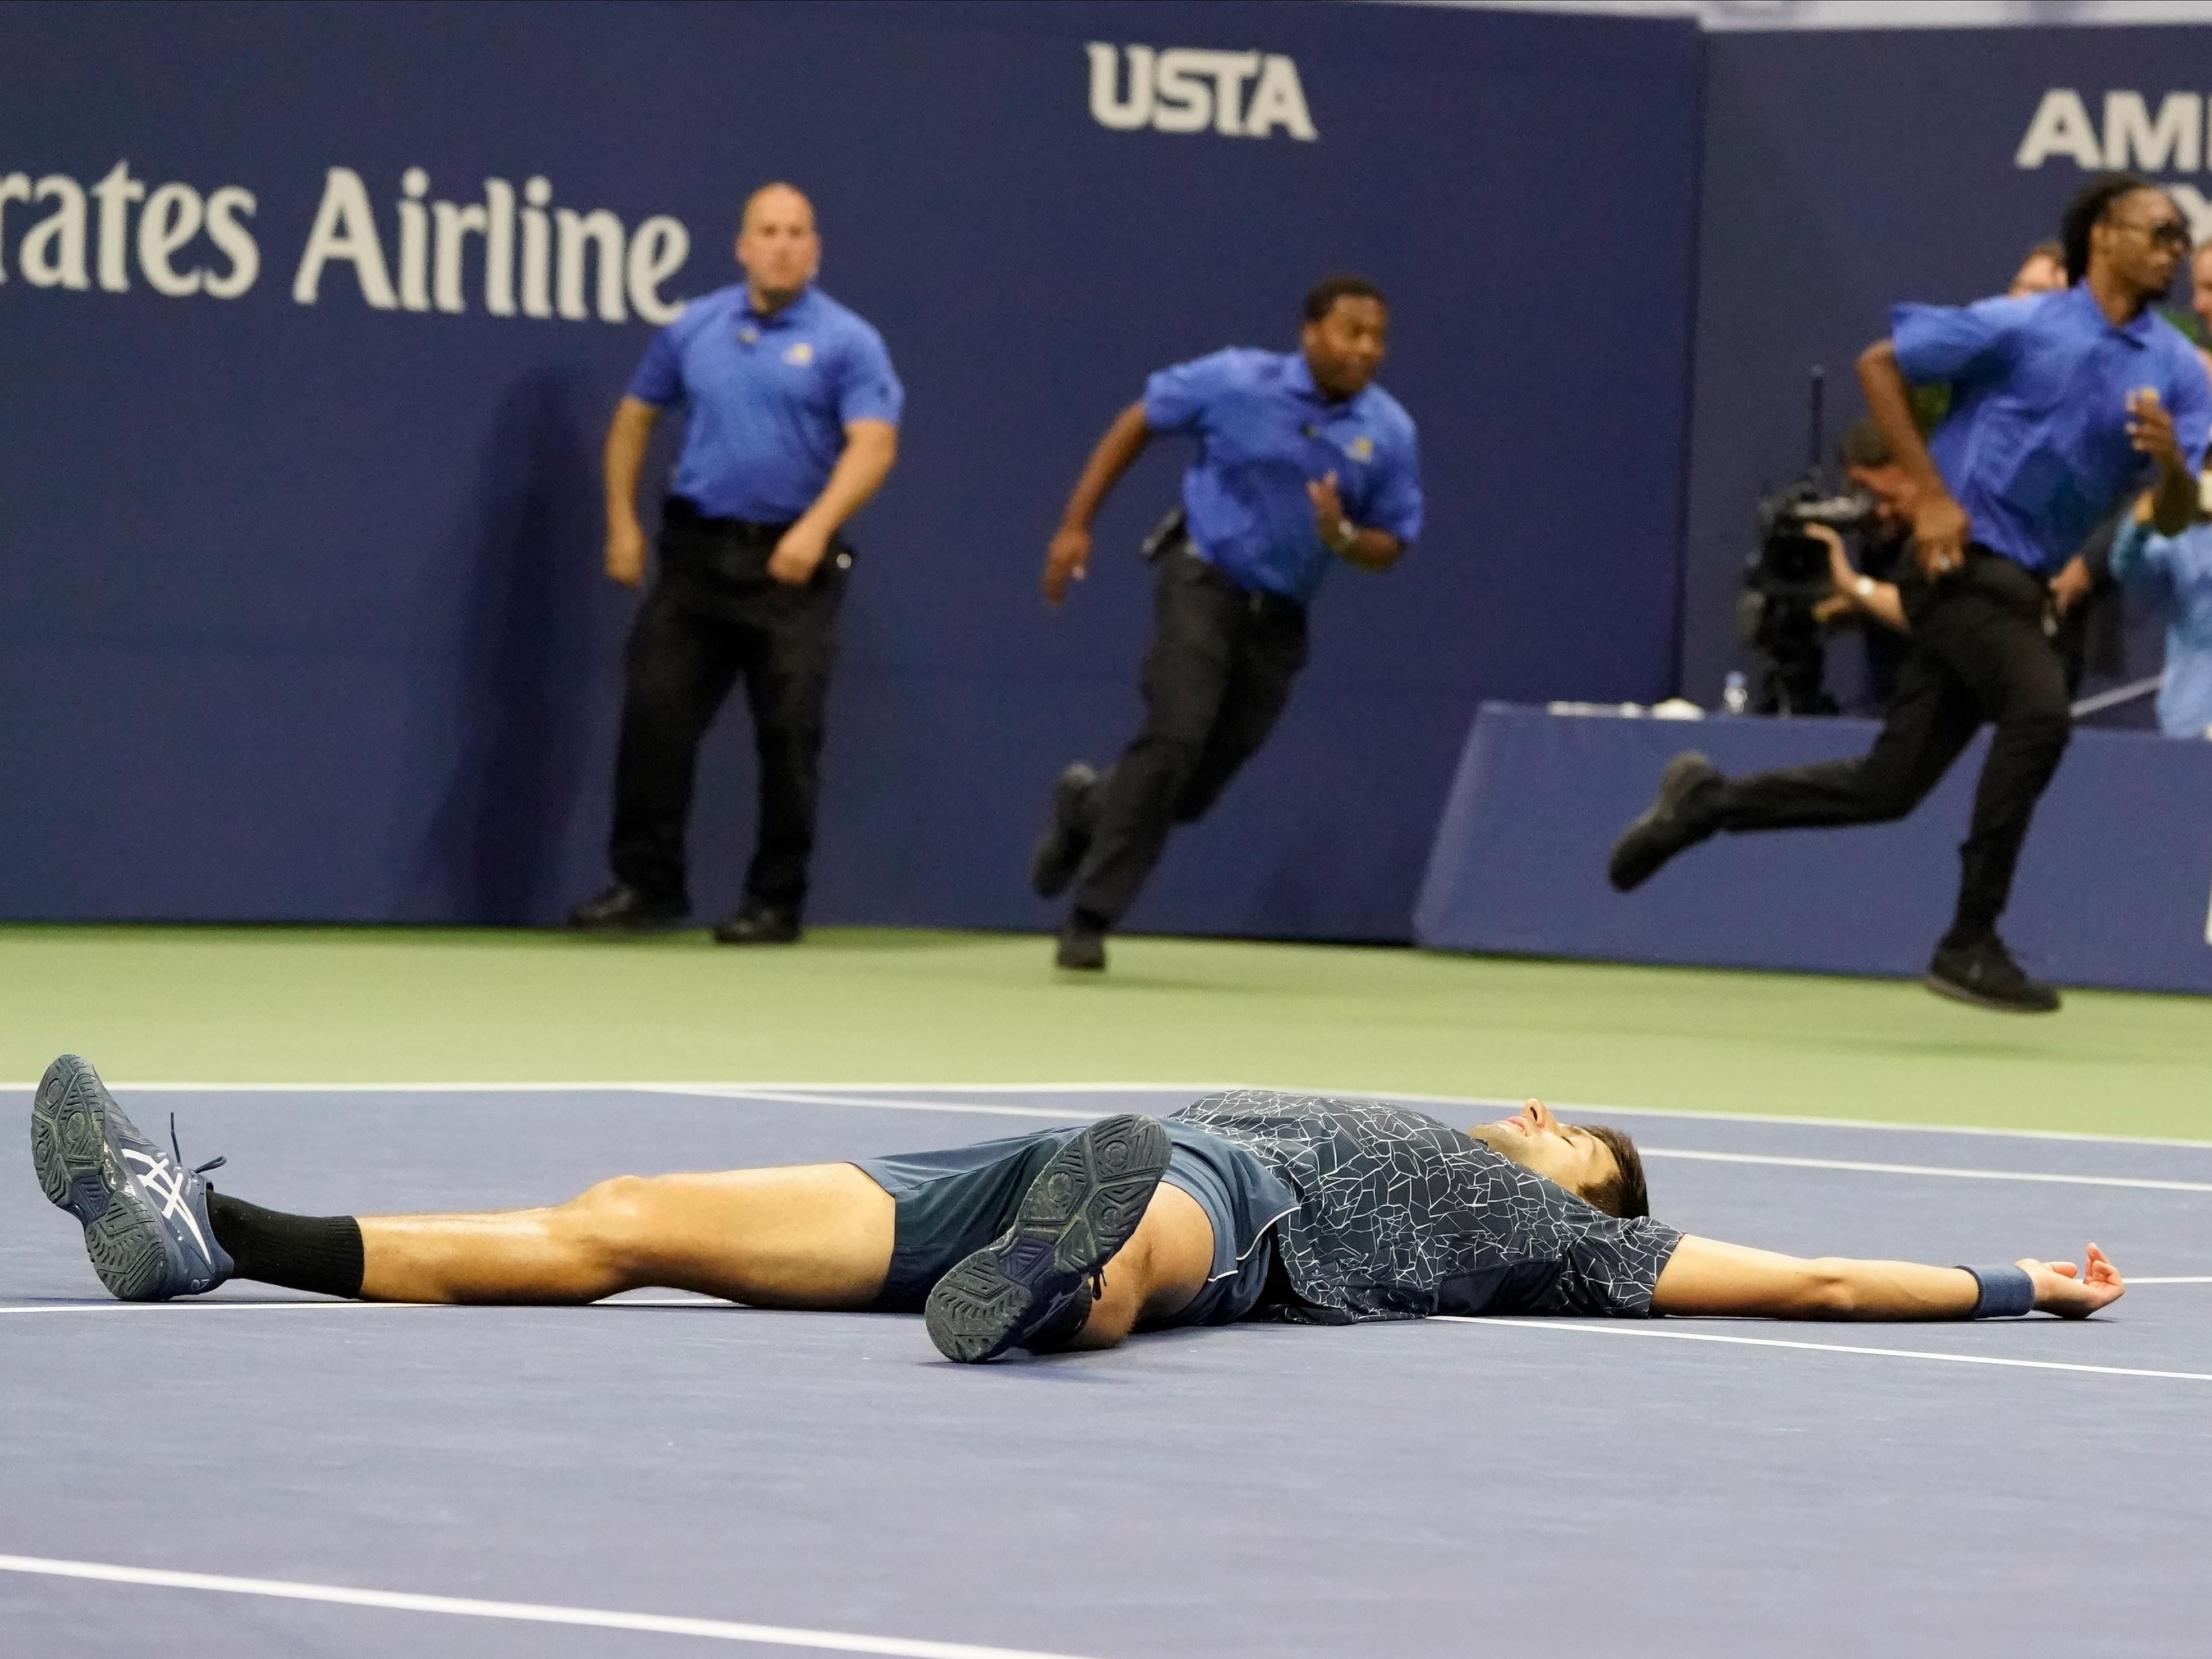 Novak Djokovic falls to the ground in celebration after defeating Juan Martin del Potro.